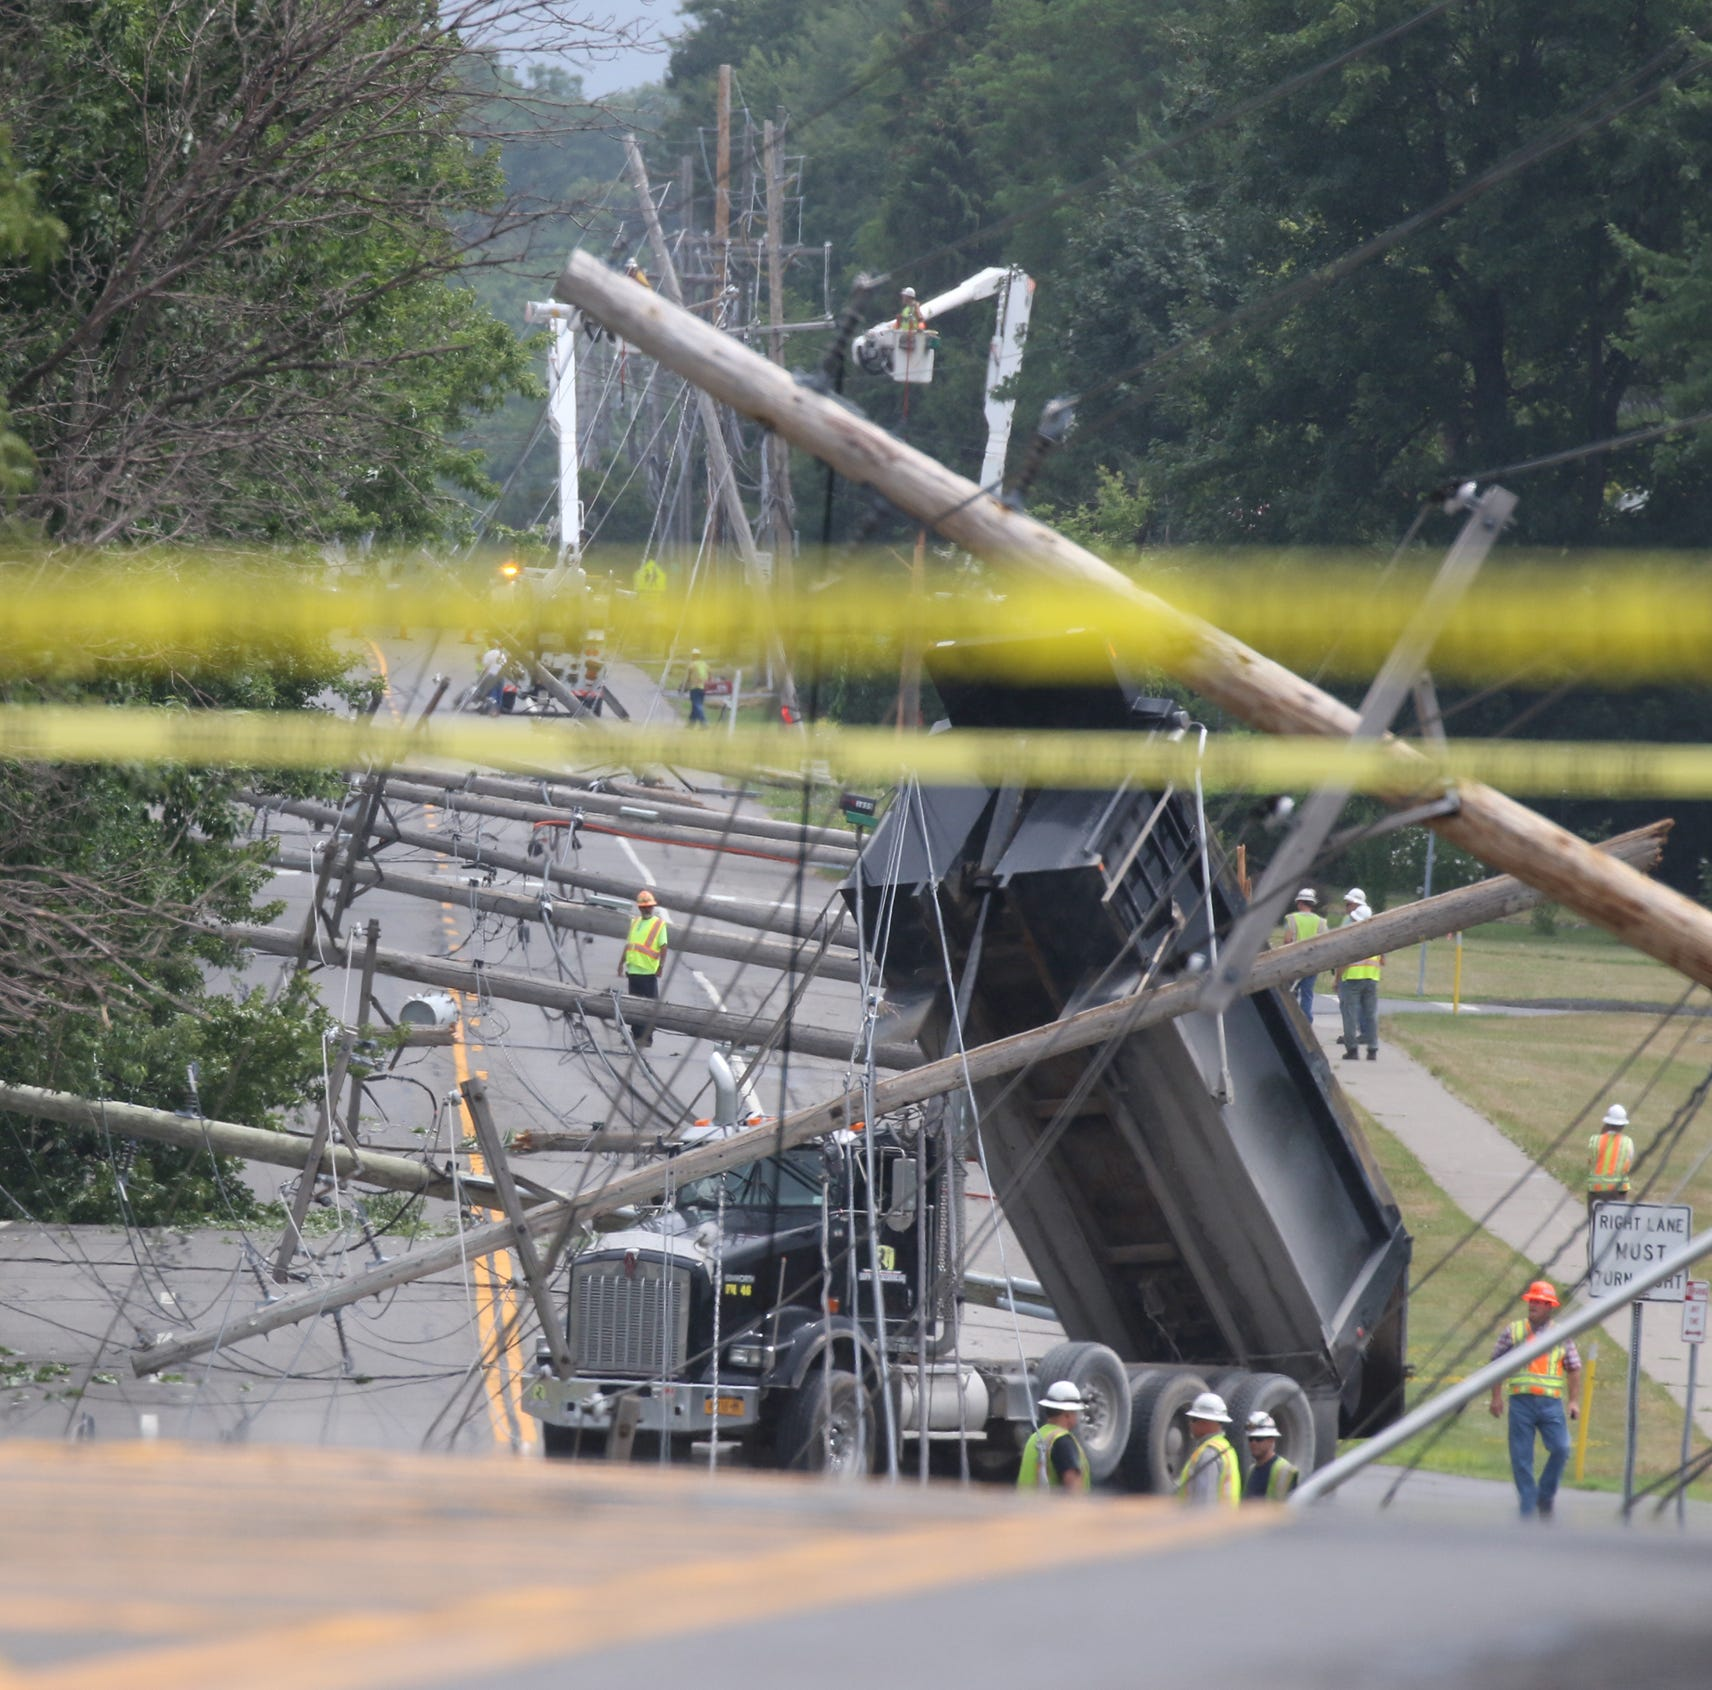 Dump truck knocks down utility poles in Henrietta leaving many without power